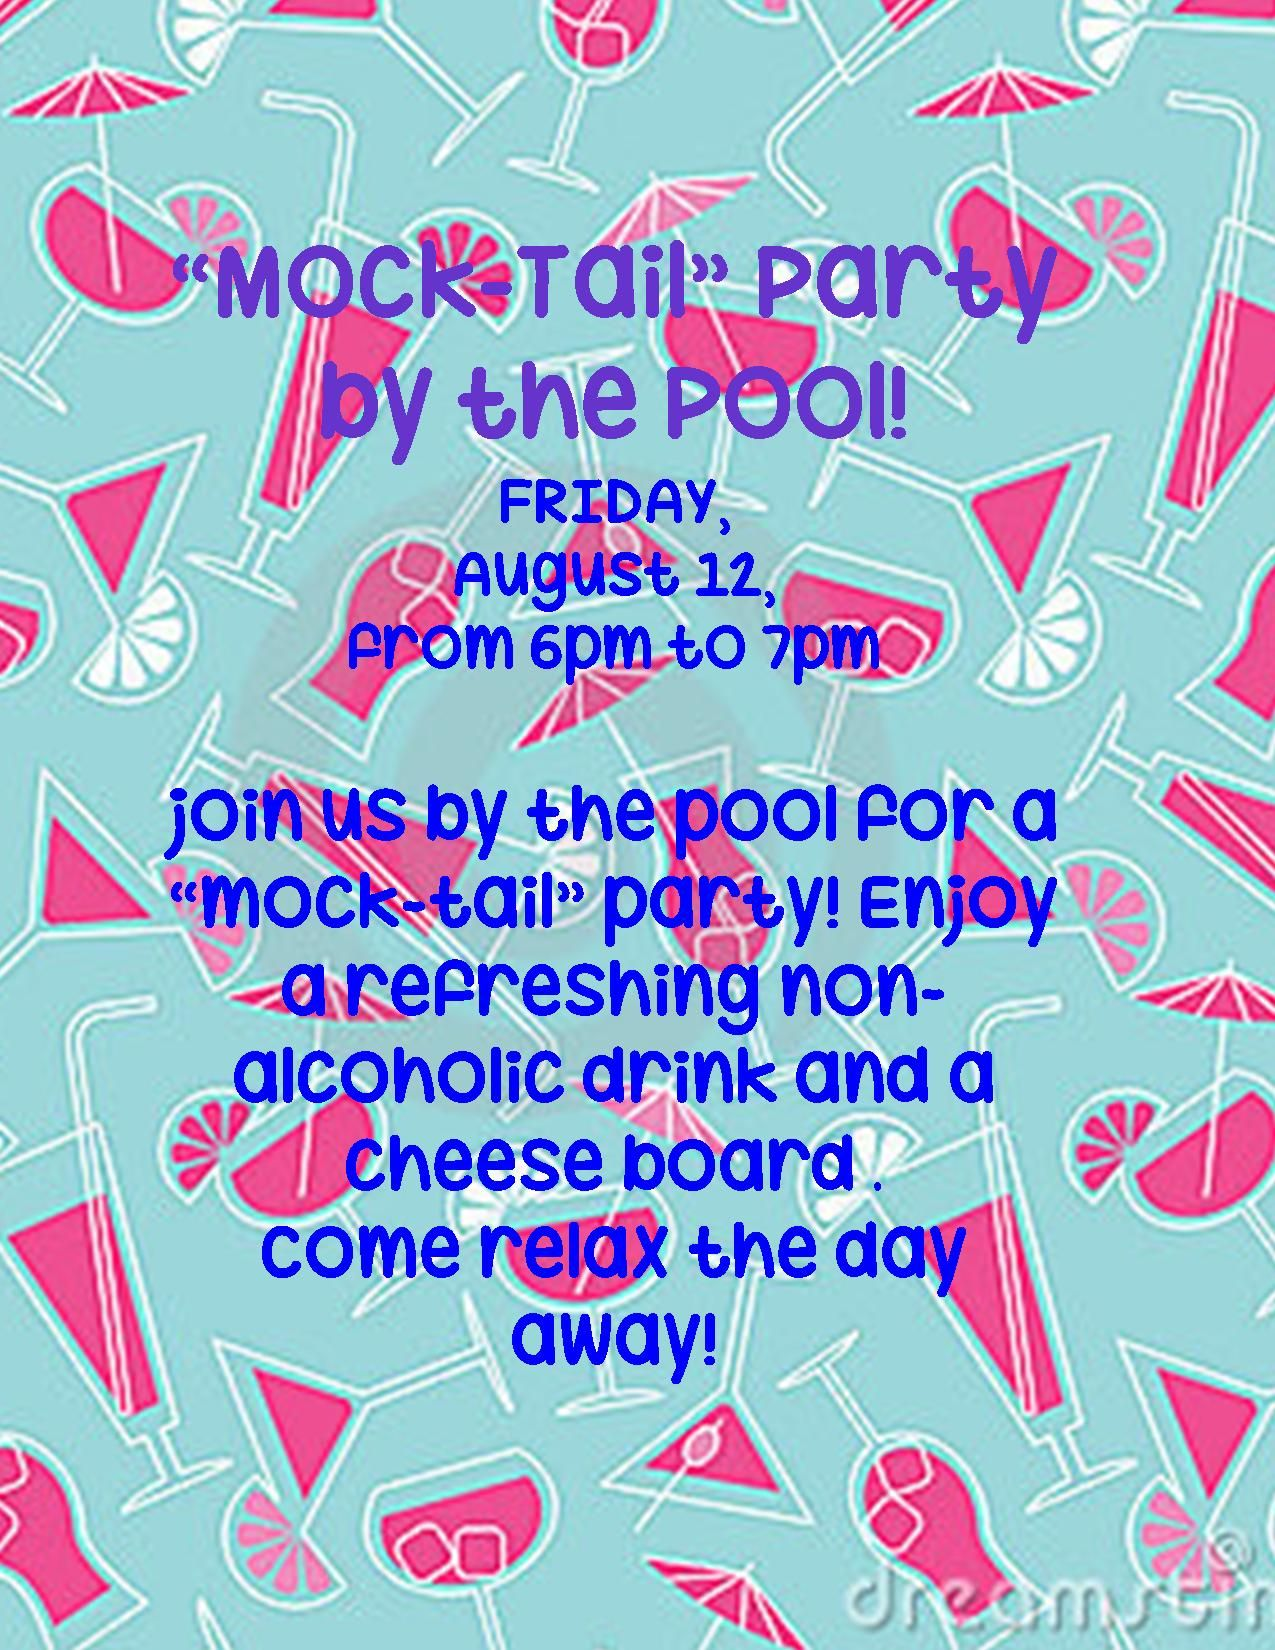 Mock-Tails by the Pool this Friday!  Resident retention, Marketing